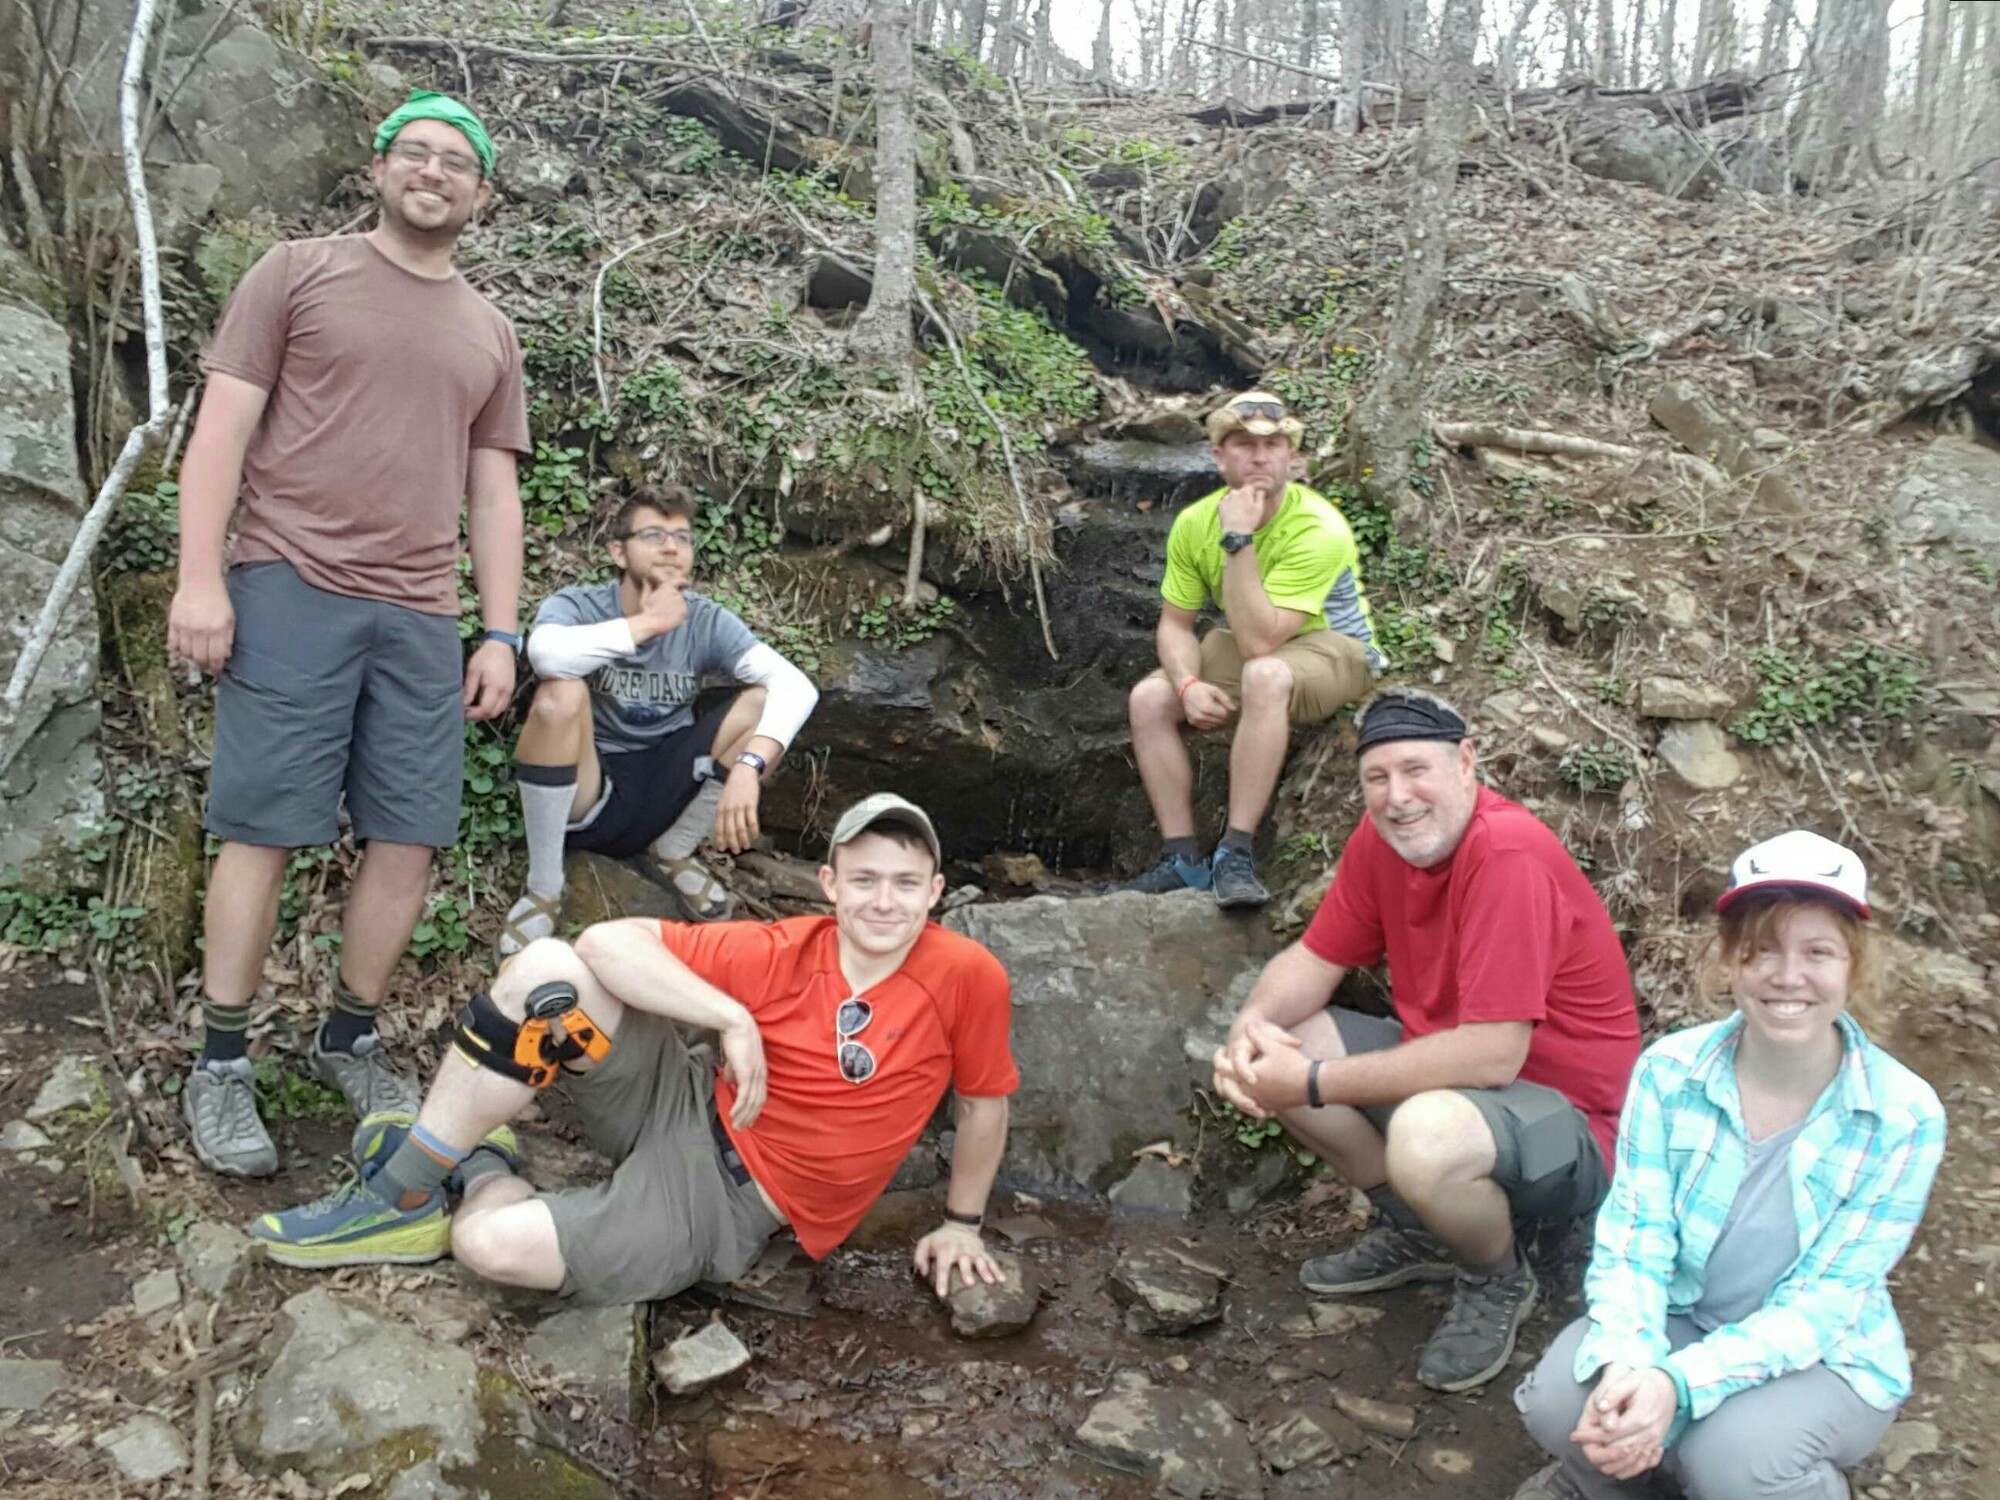 Highs and Lows, week 2 on the Appalachian Trail